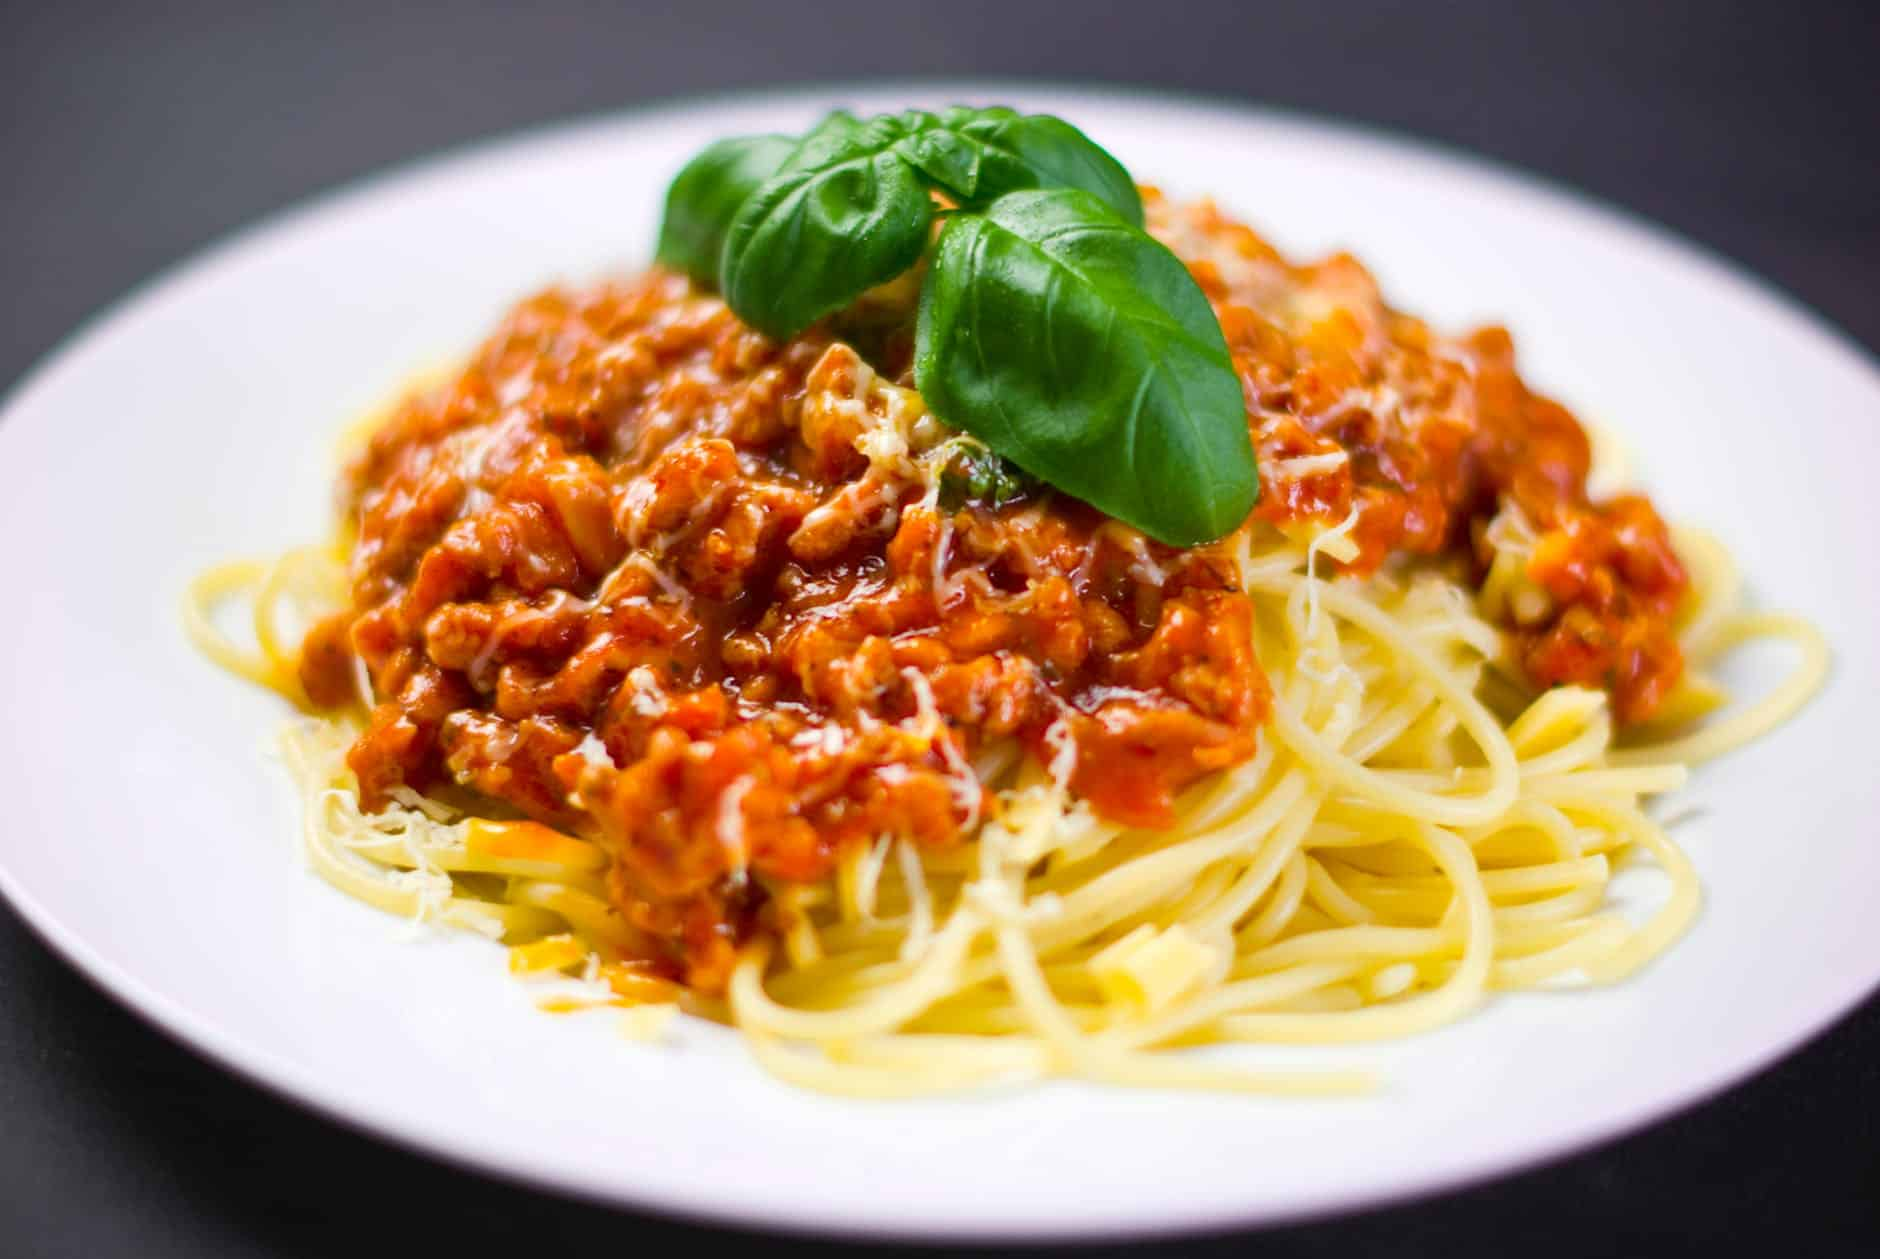 spaghetti can be part of healthy eating behaviors